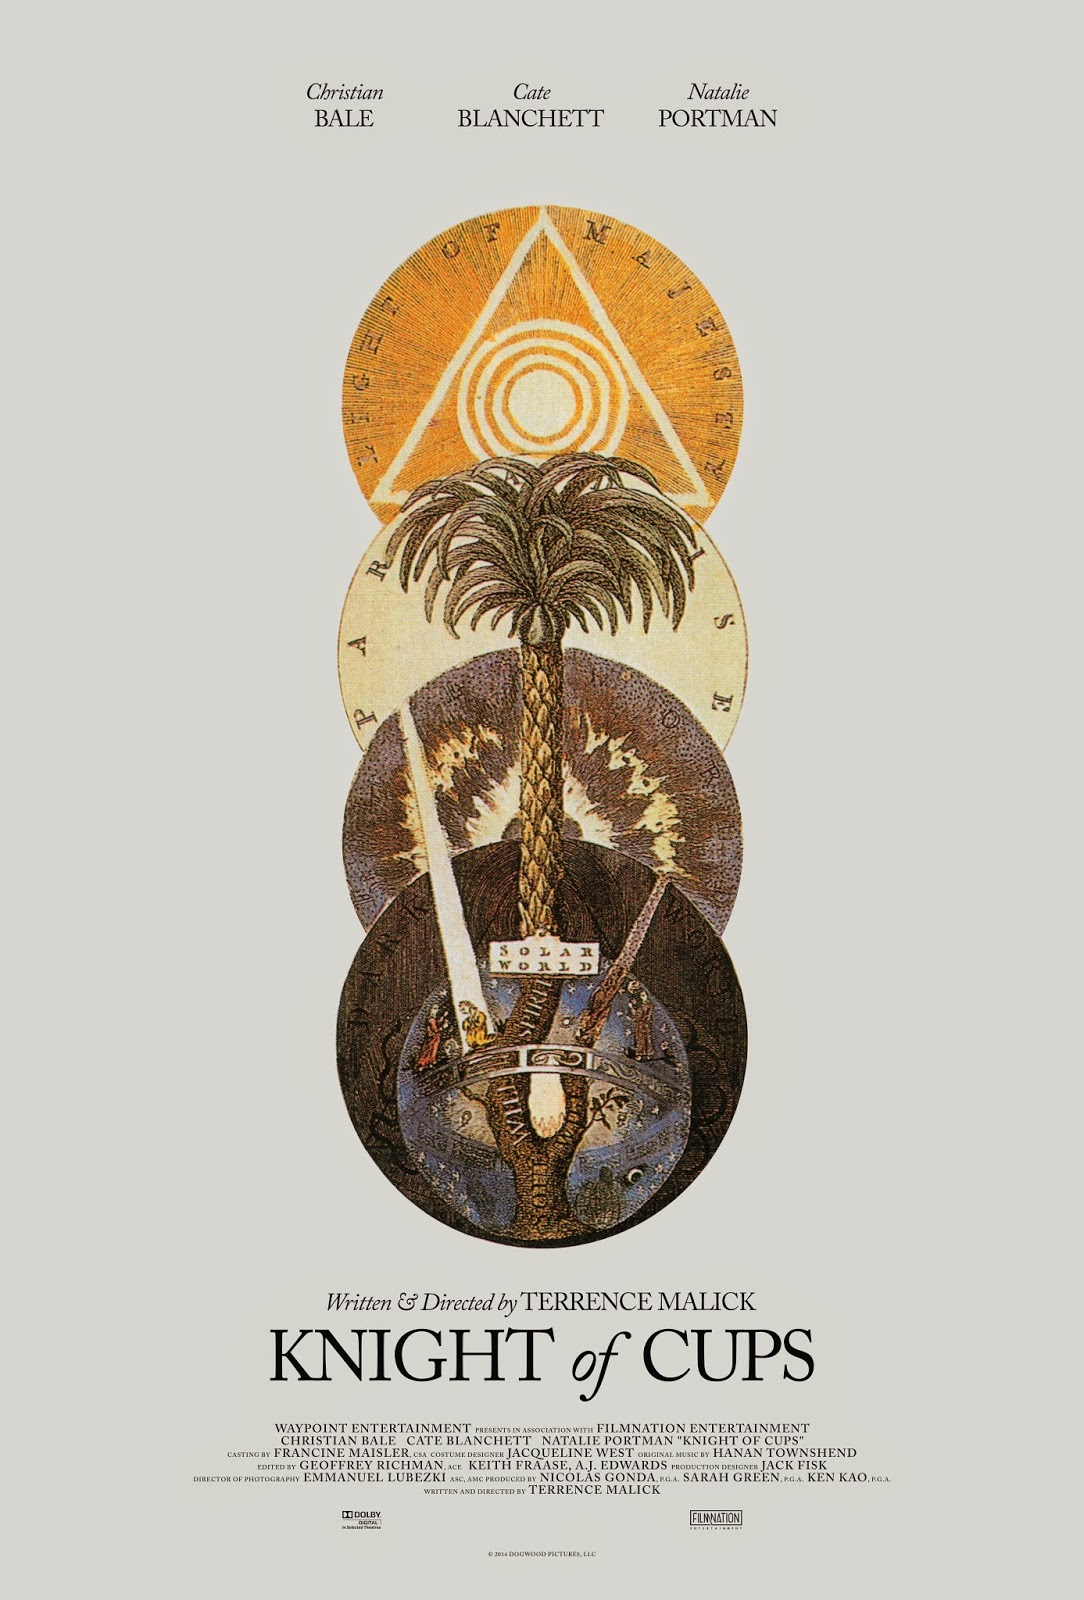 Terrence Malick's Knight of Cups Film Poster